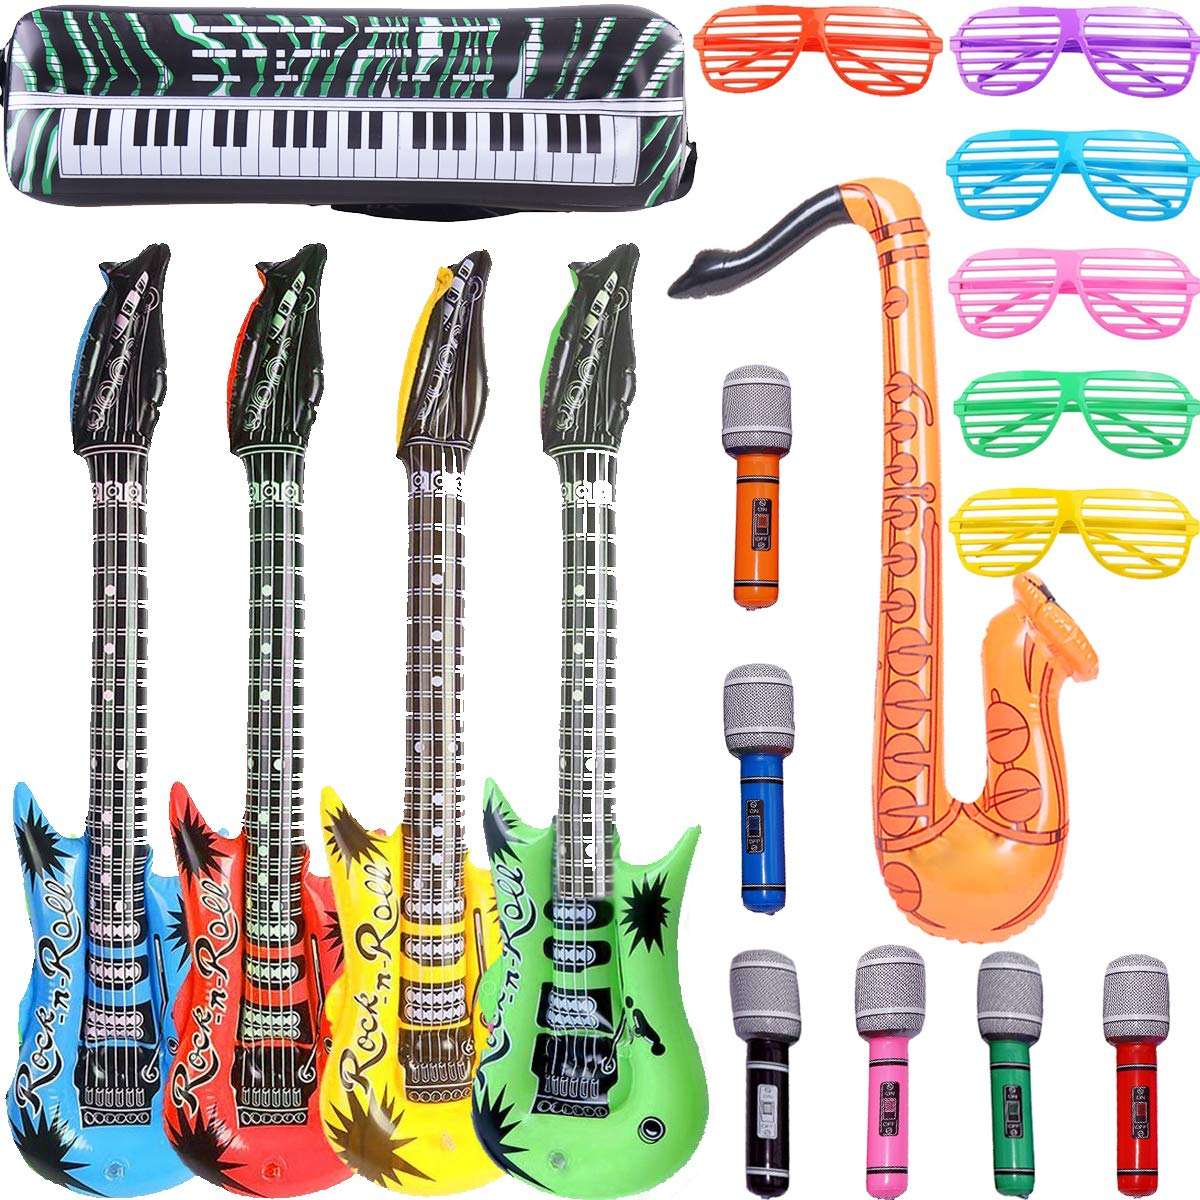 Inflatable Rock Star Toy Set - 18 Pack Inflatable Party Props - 4 Inflatable Guitar, 6 Microphones, 6 Shutter Shading Glasses, 1 Saxophone and 1 Inflatable Keyboard Piano Inflatable Rock toys by OuMuaMua